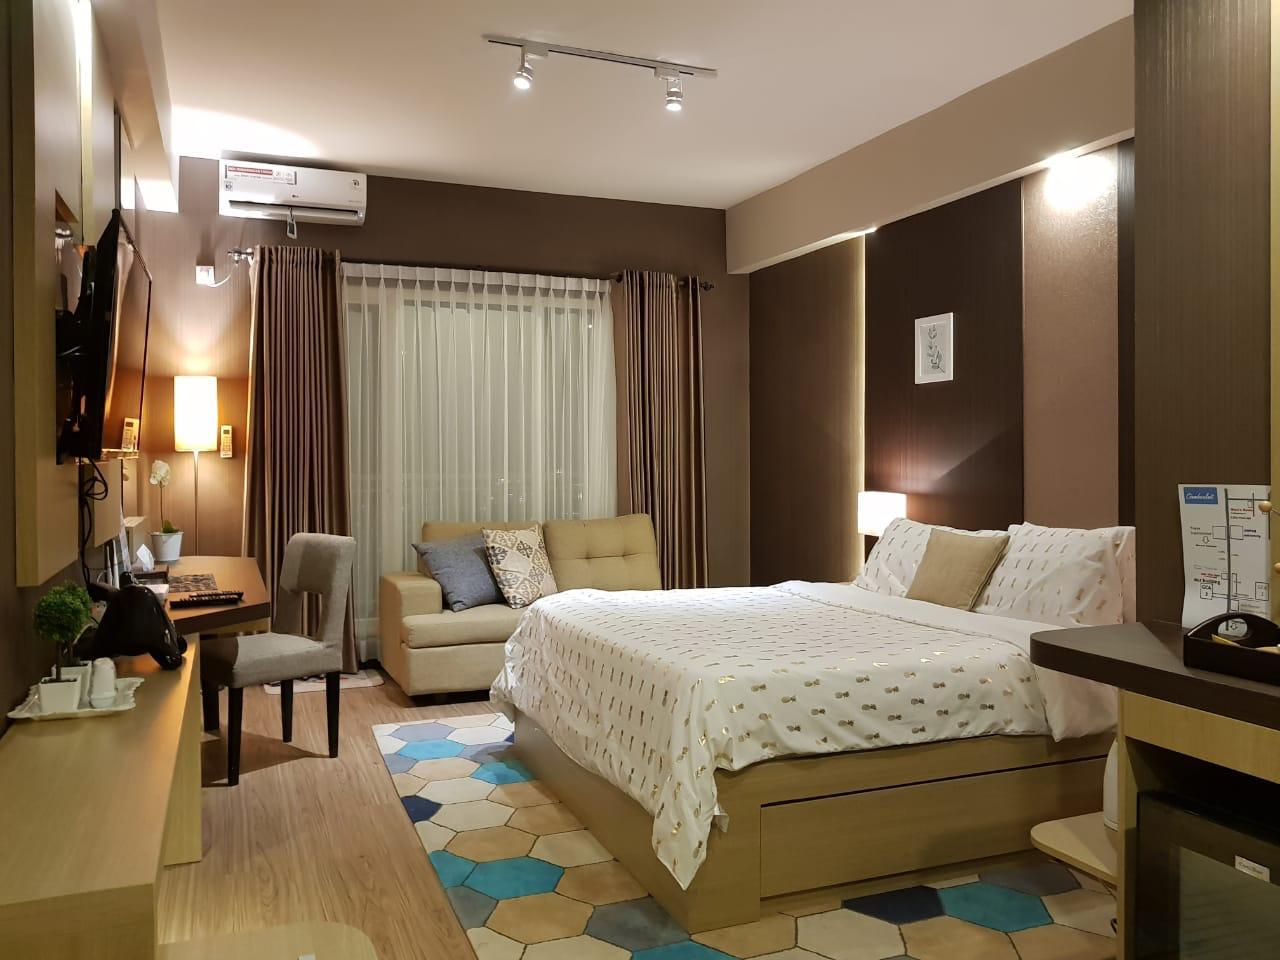 New! Cozy room at Galeri Ciumbuluit for 3 adult Reviews